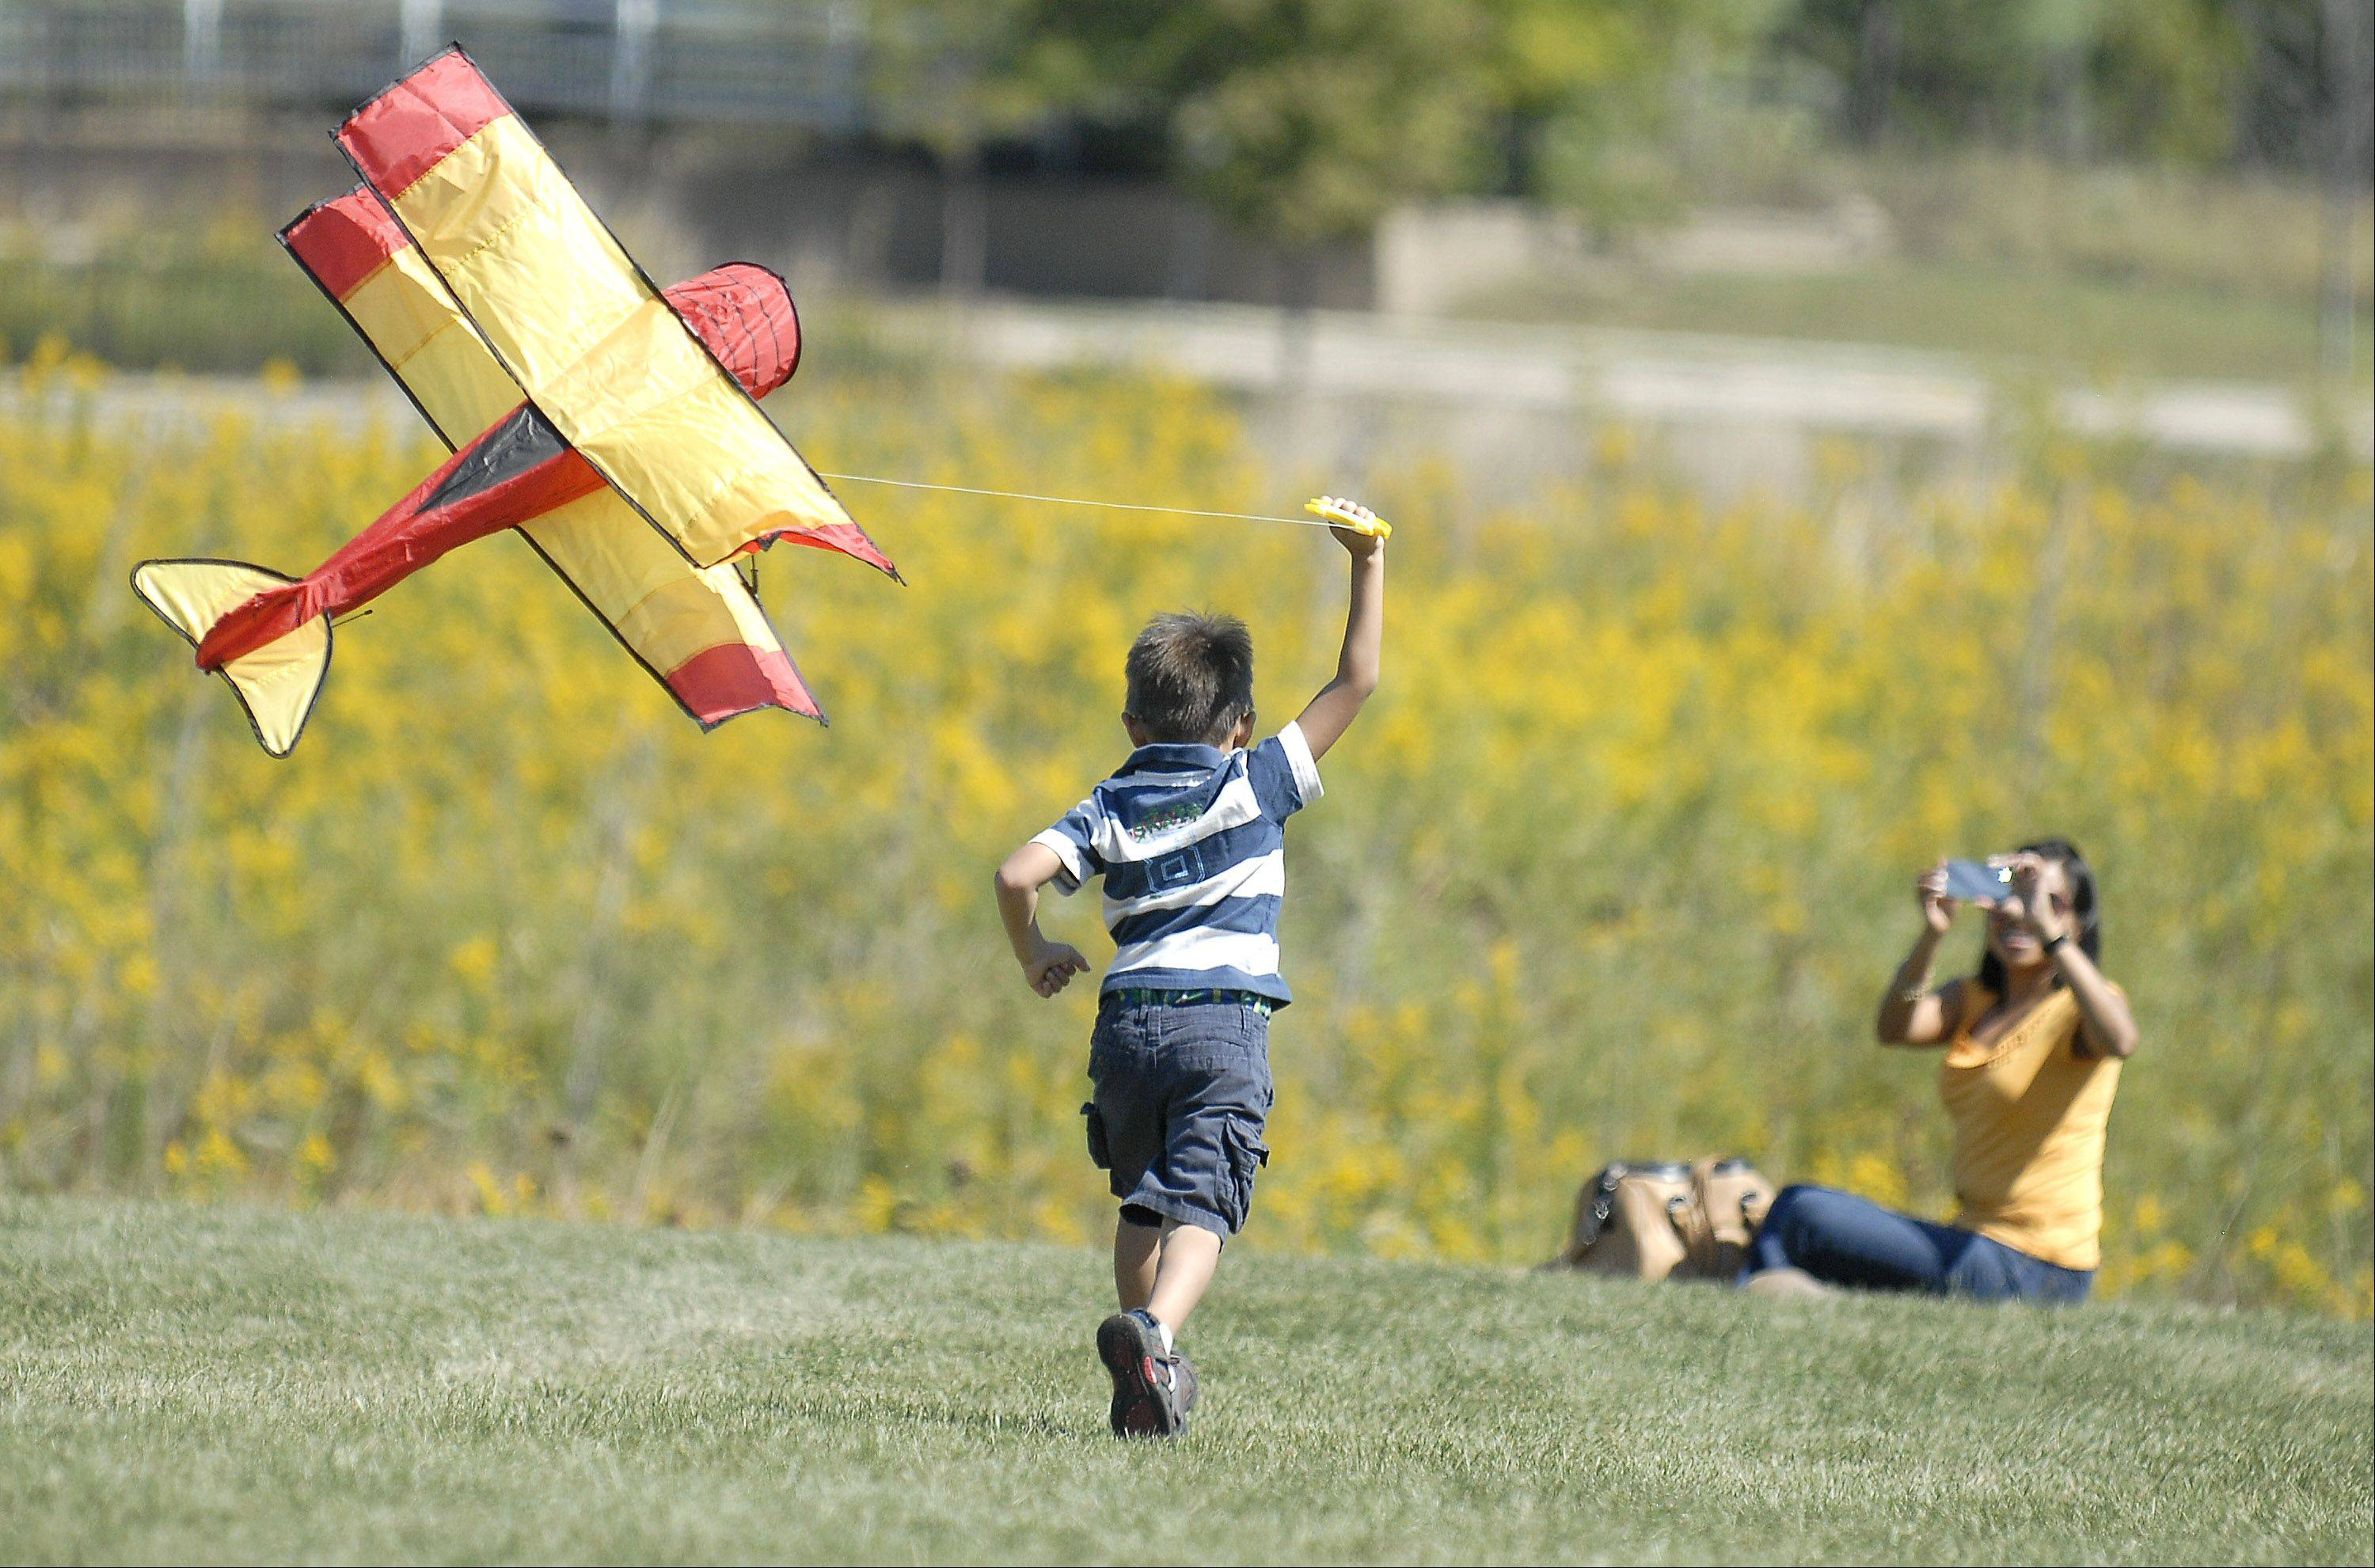 I saw a few kites hanging in the garage this week and it got me thinking about how much I'm looking forward to warm temps and bright summer colors. Then I remembered the fun and colorful photos I took during the last week of summer at the Geneva Park District's annual Kite Festival and thought I'd share. Tania Oldham of Geneva takes a photo of her son, Lucas, as his biplane kite soars at Peck Farm Park.